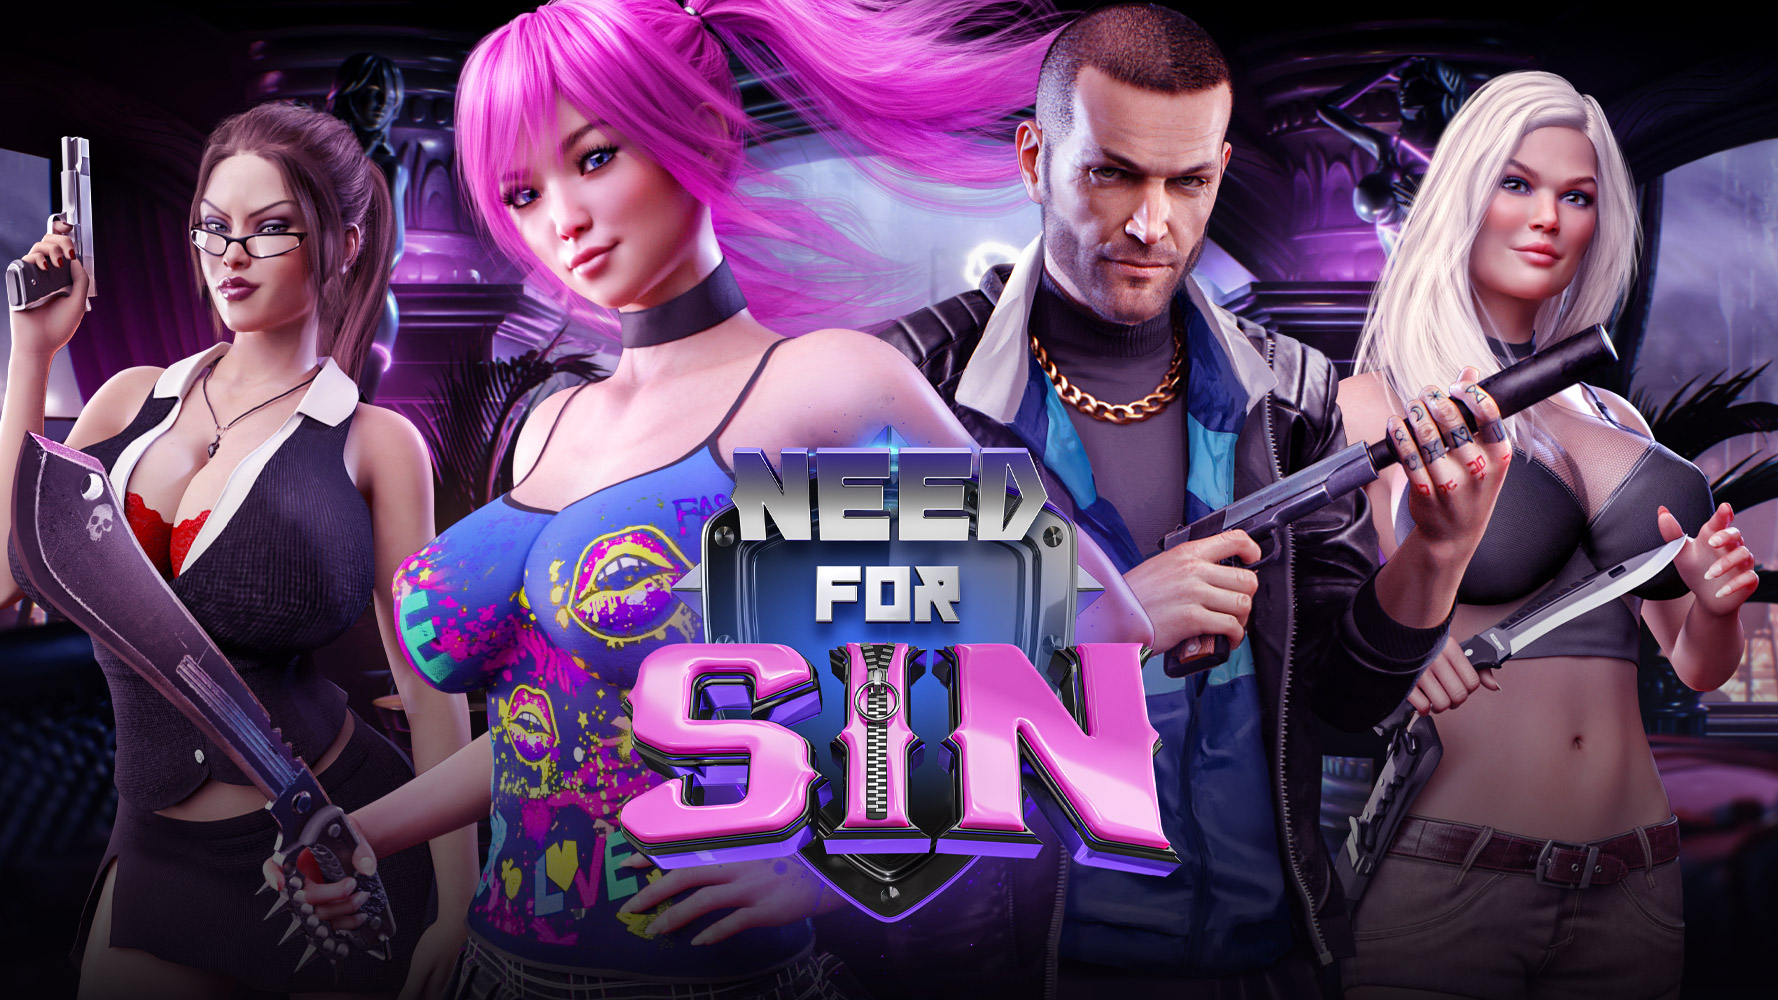 jeu hentai need for sin